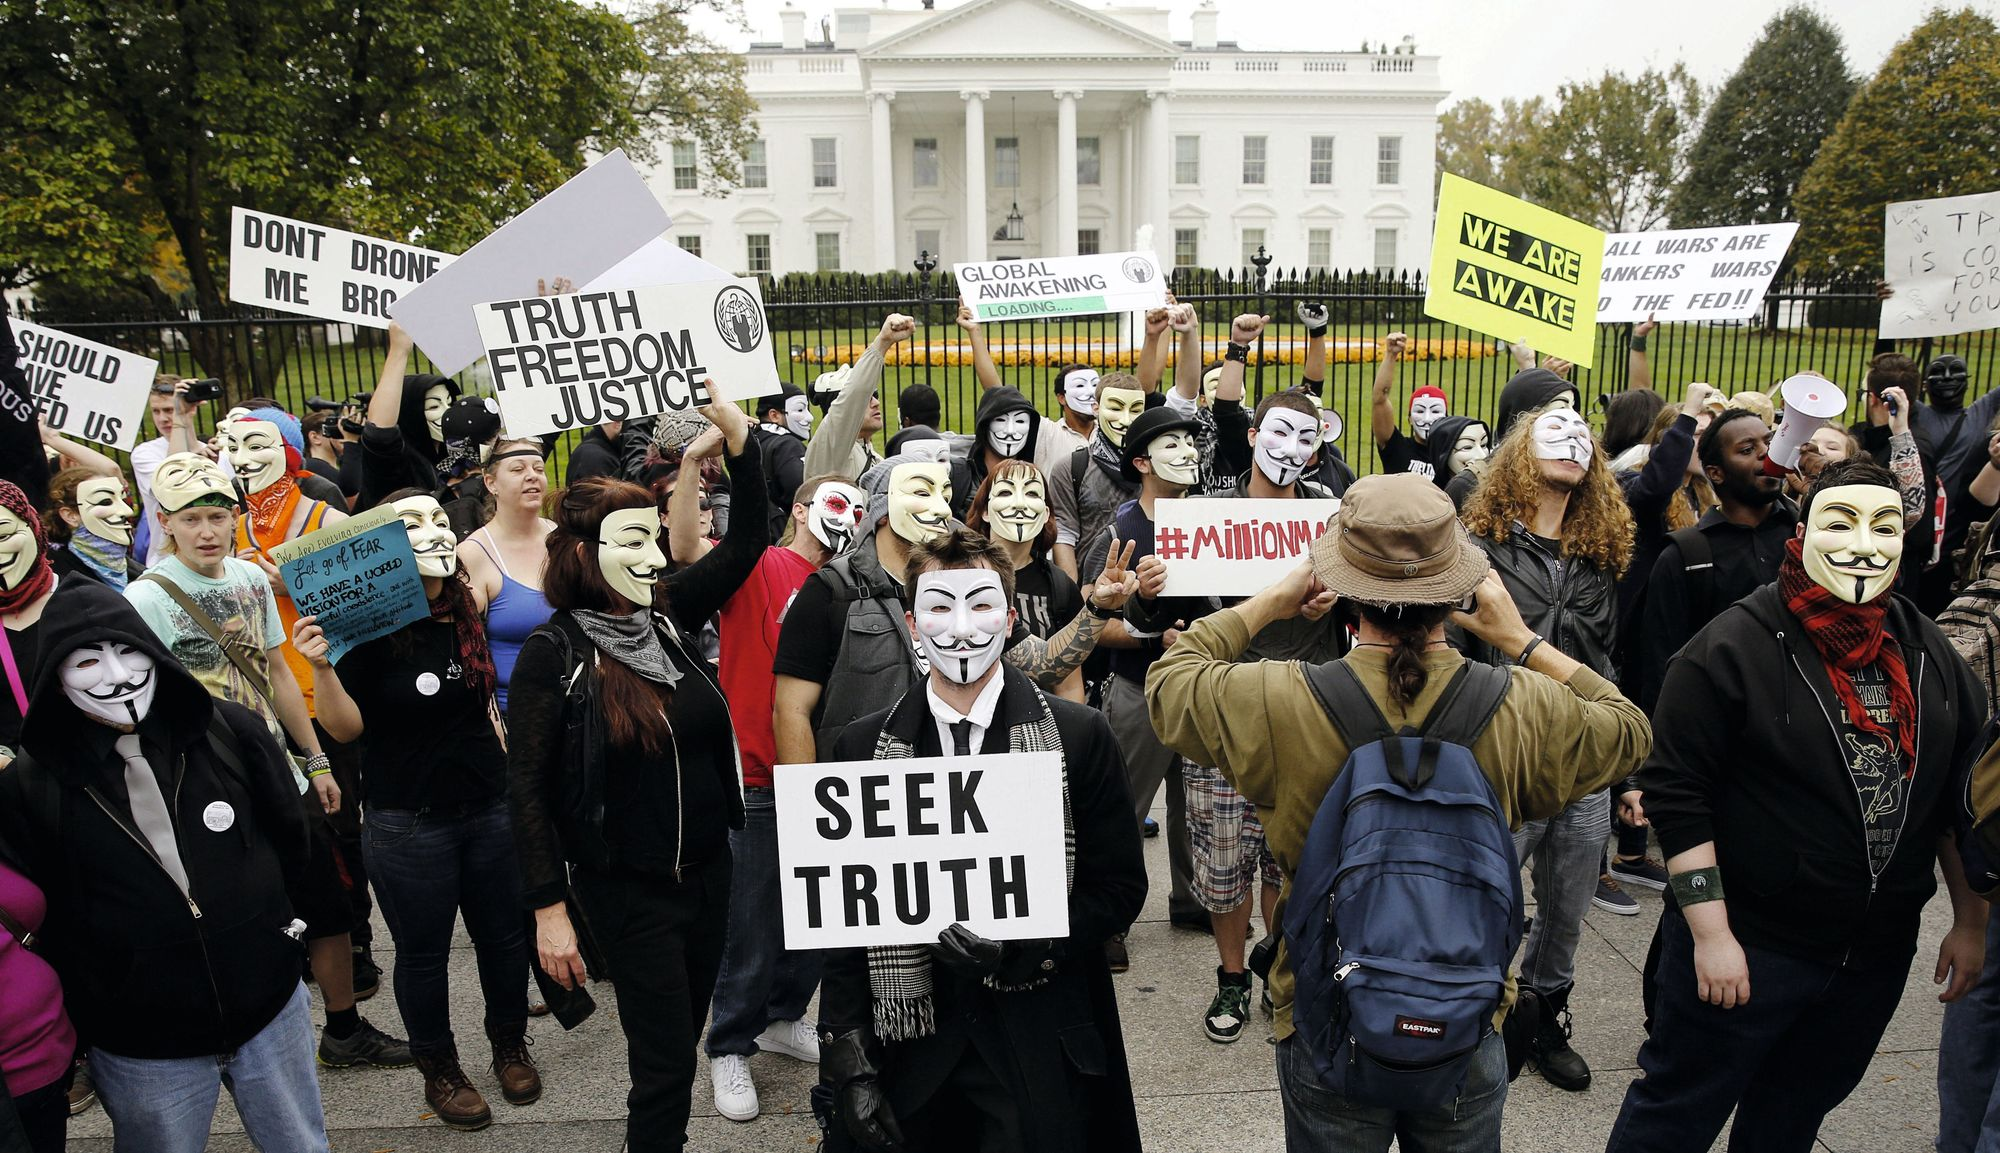 Members of Anonymous in front of the White House during the Million Masks March, 2015.